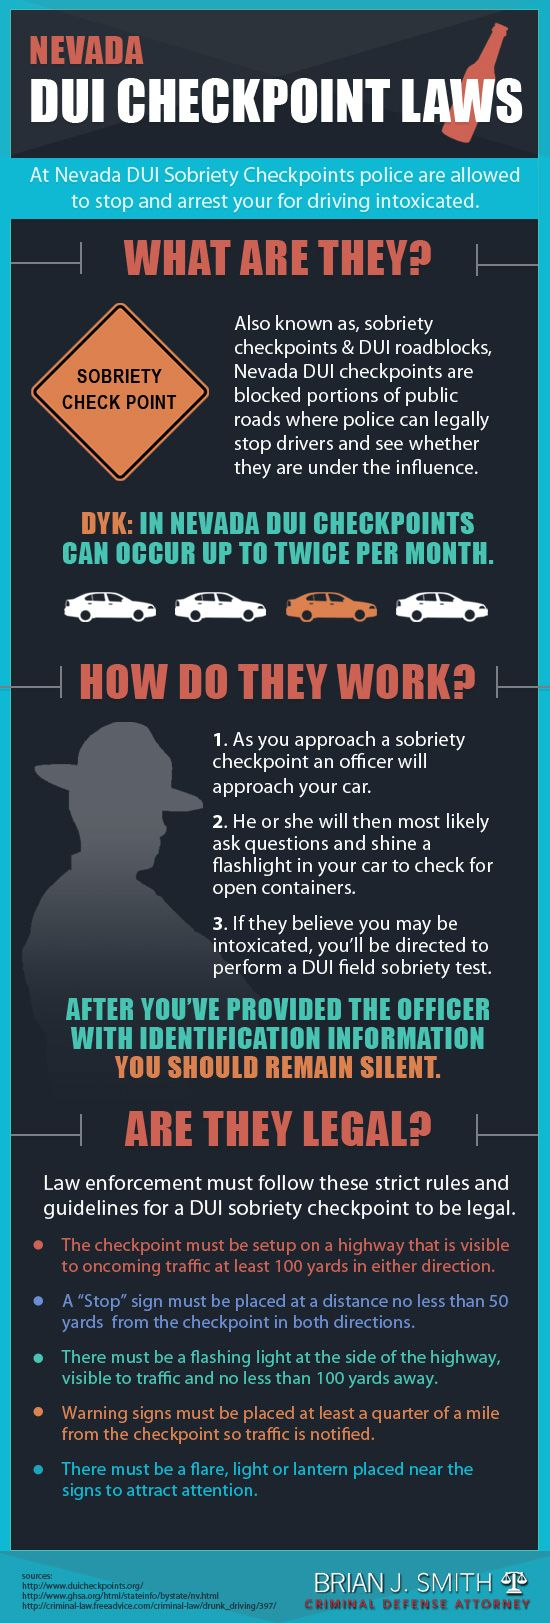 Here's what you need to know if you find yourself at a #DUICheckpoint. #law #drunkdriving #driving #roadrules